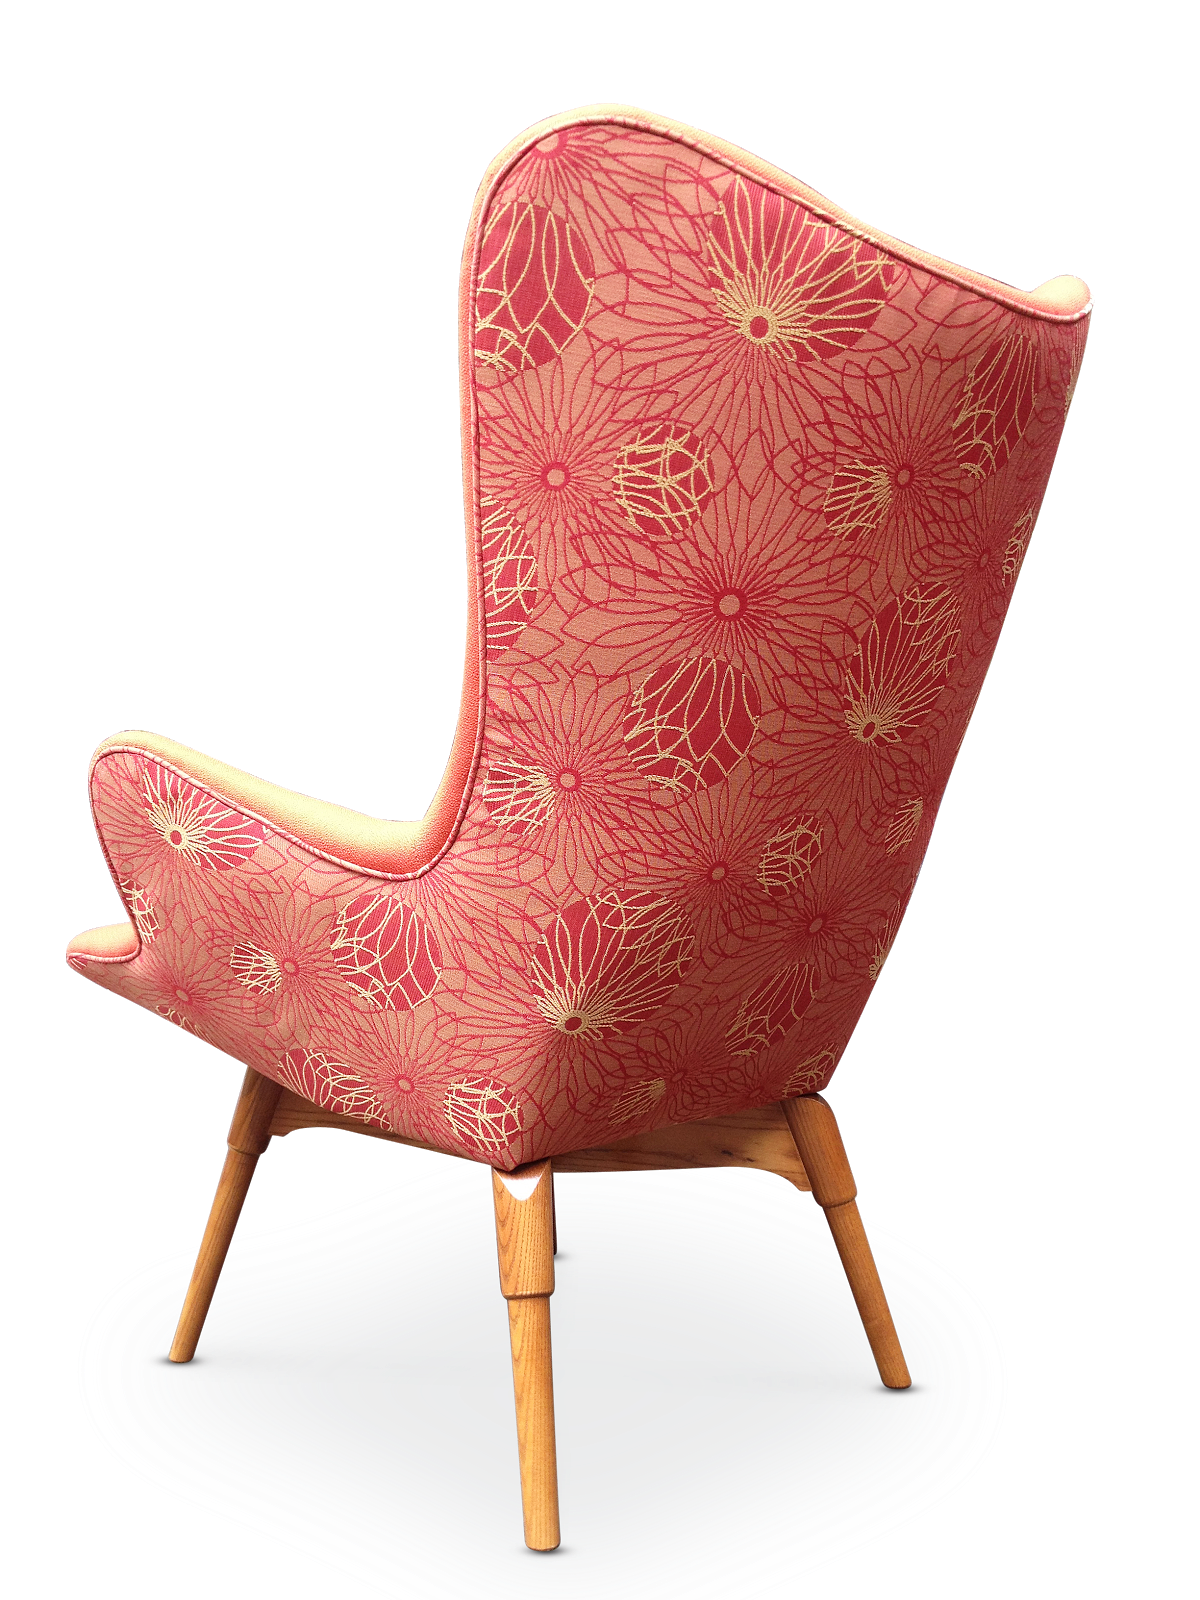 Bespoke funy bedroom chair whimsical world of laura bird for Funky furniture